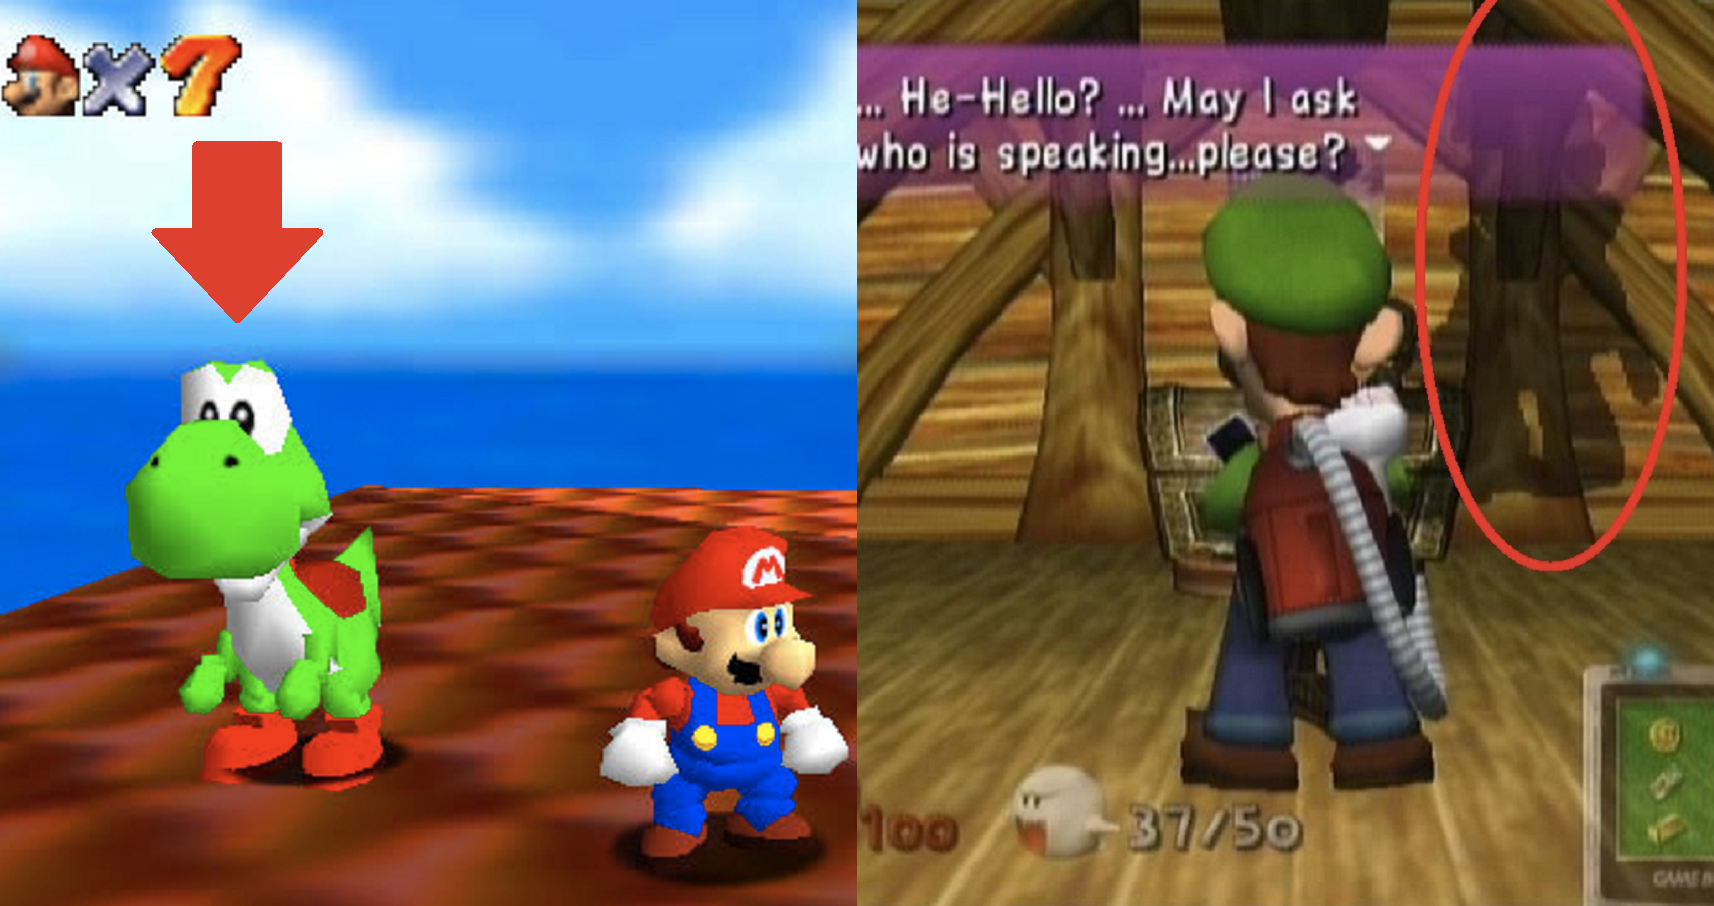 10 Hidden Easter Eggs In Popular Nintendo Games